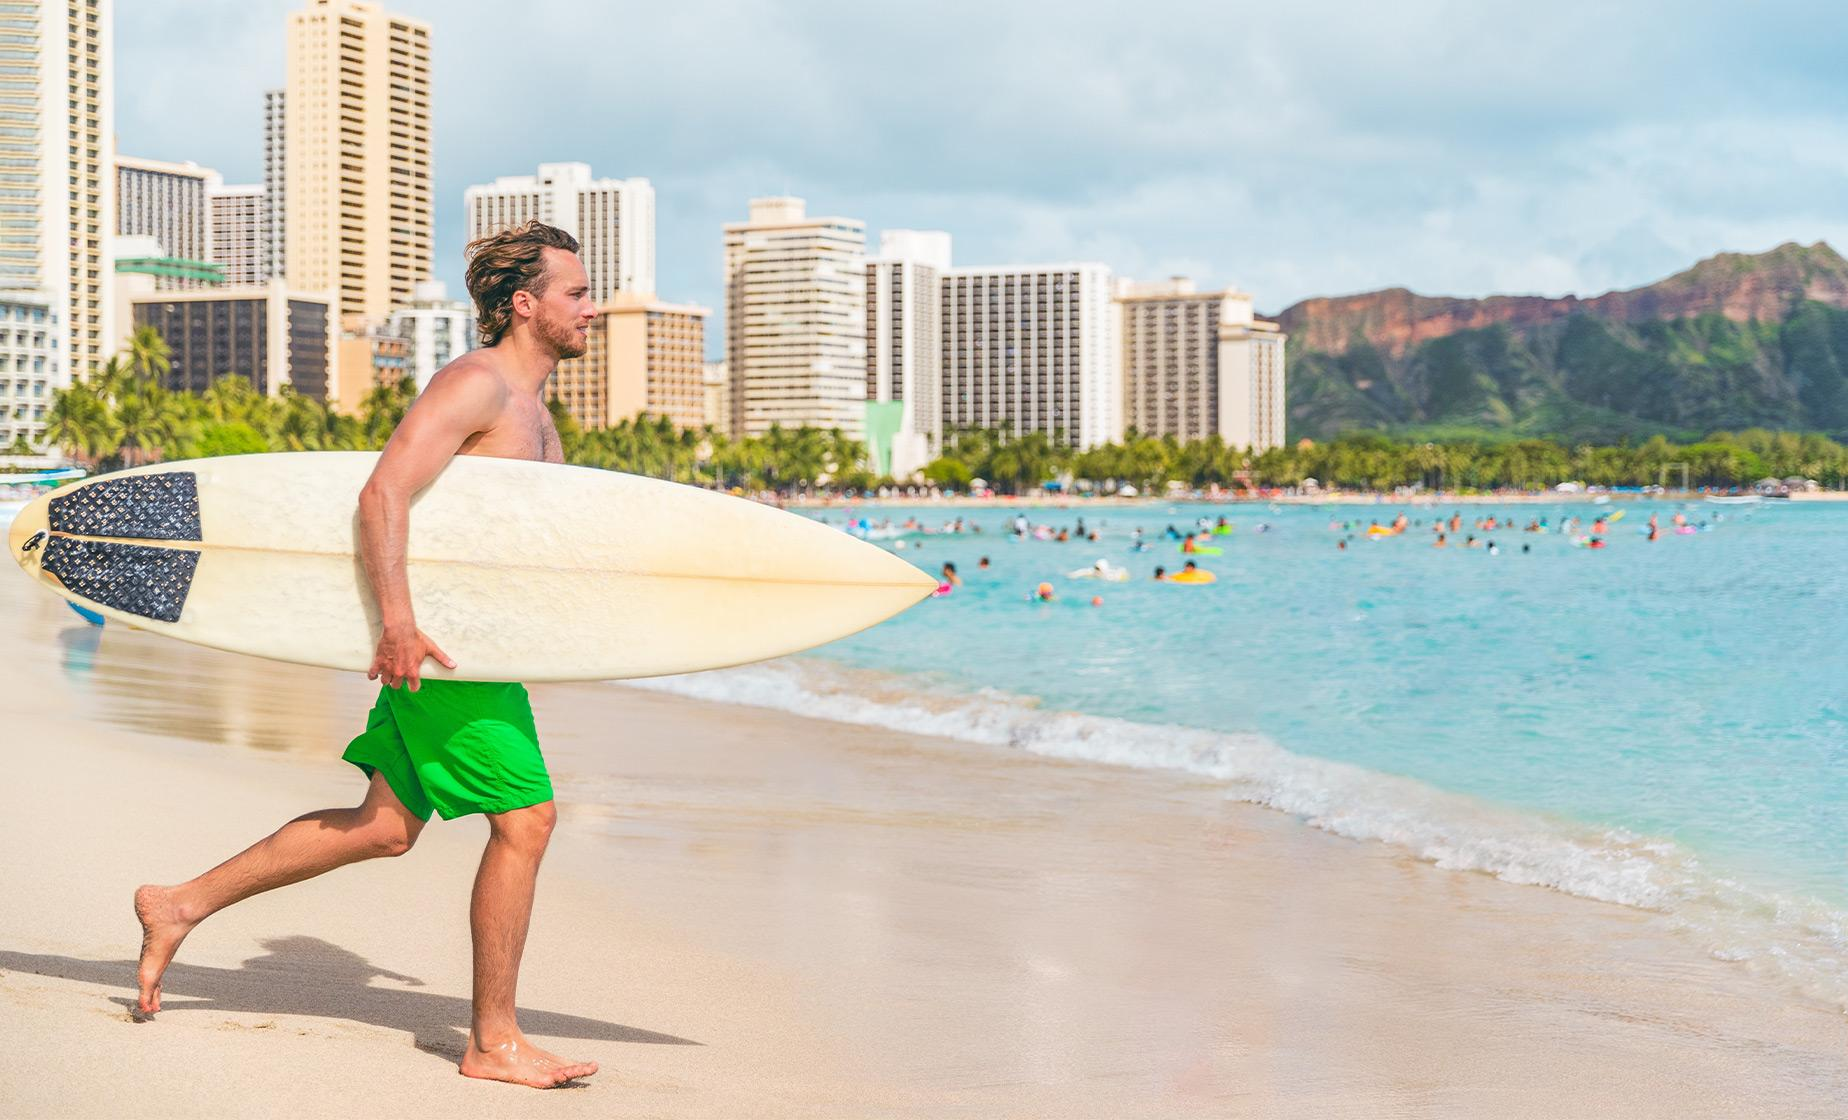 Small Group Surfing Lesson Tour in Oahu (Waikiki Beach)